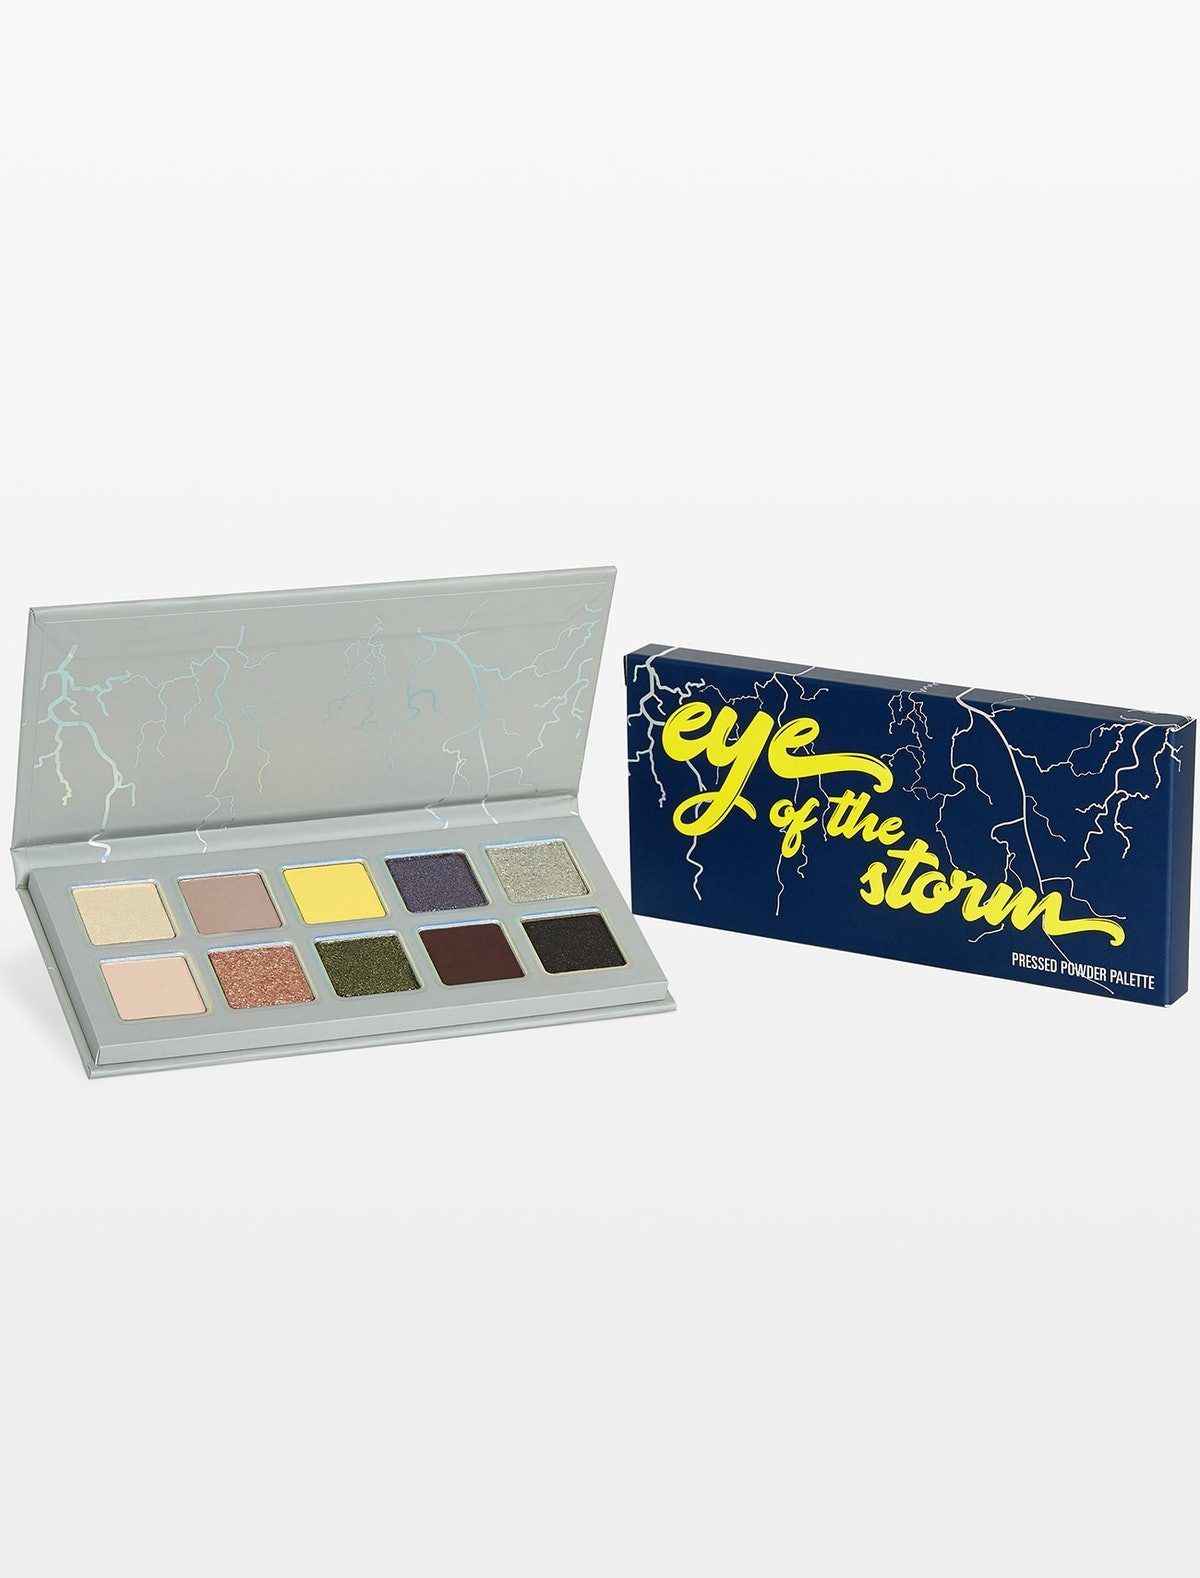 Eye of the Storm KyShadow Palette